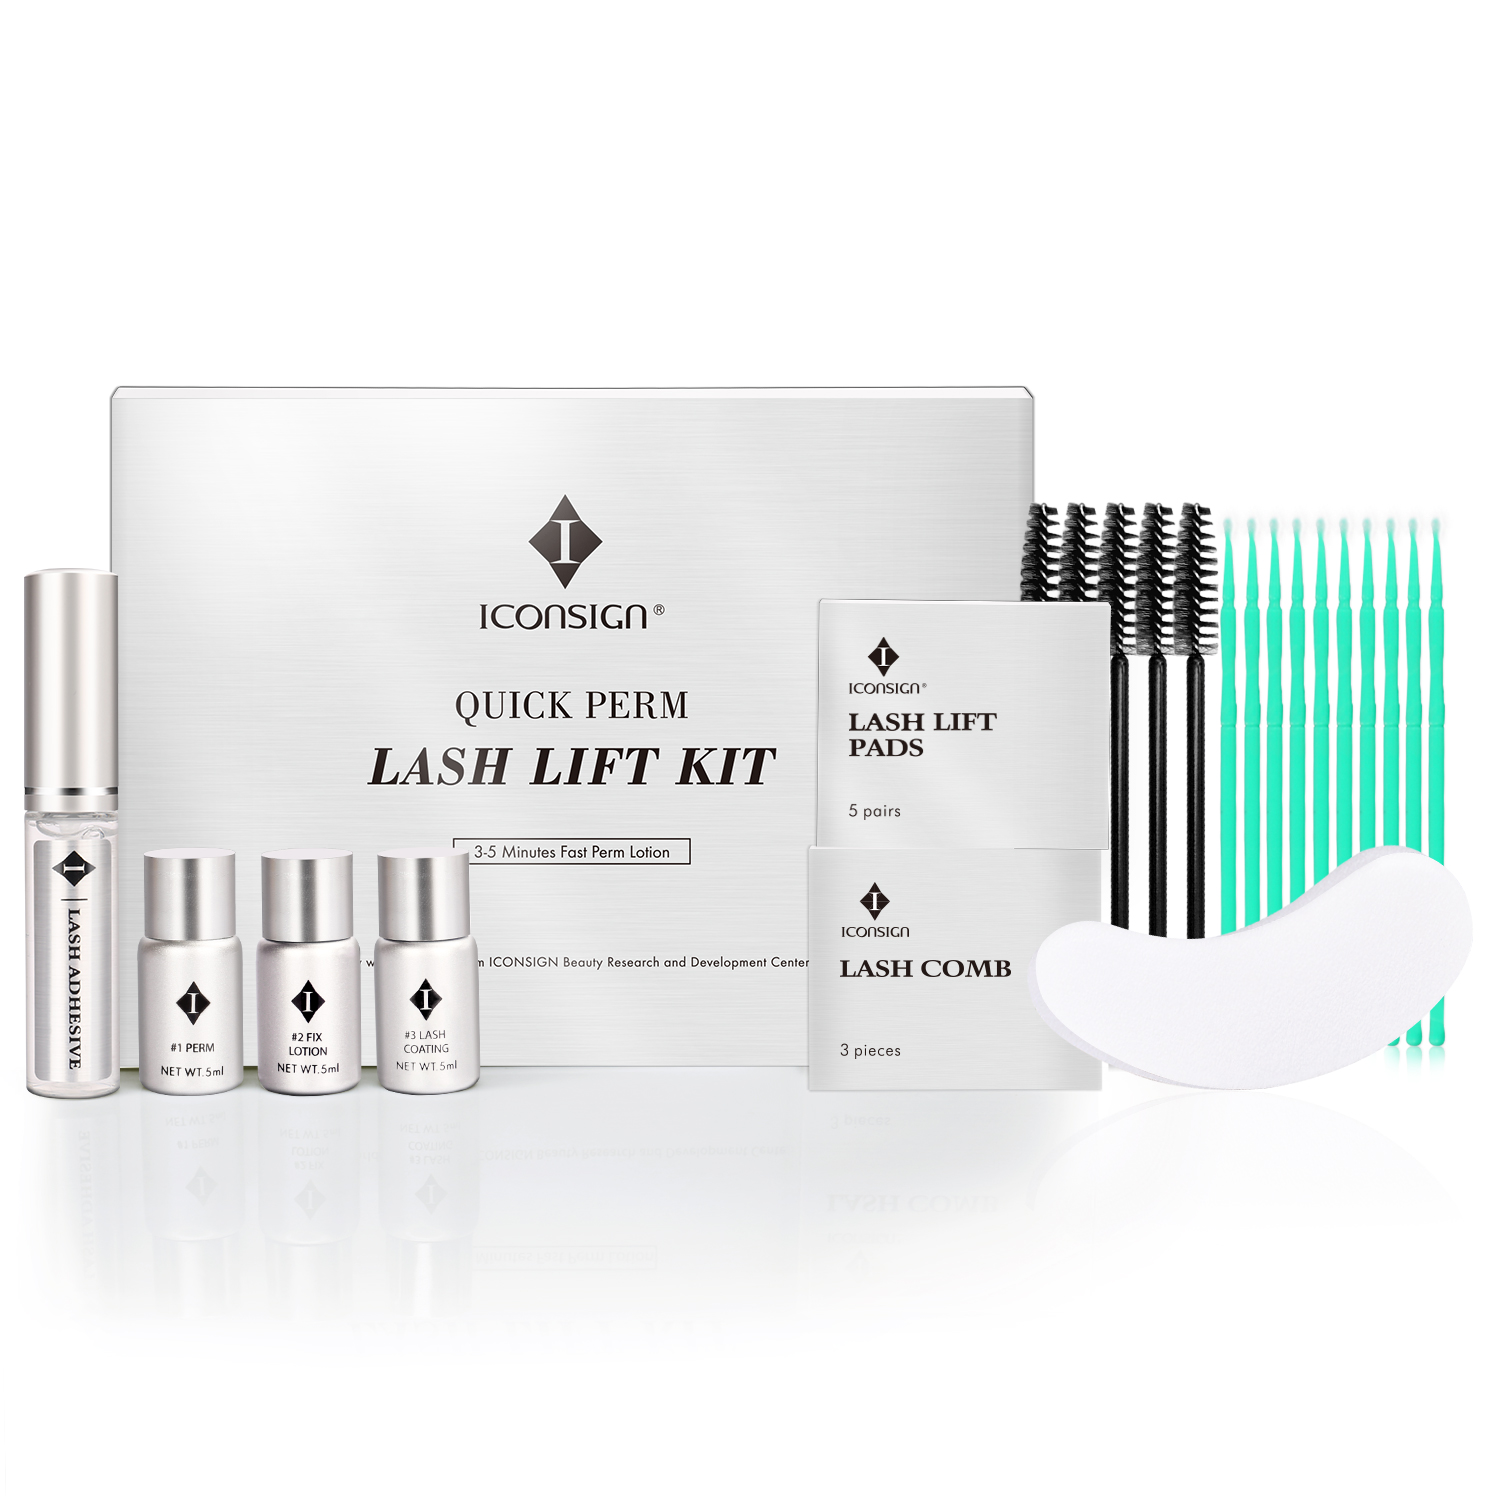 Quick Perm Lash Lift Kit Eyelash Perming Set Fast Perm Lotion Lashes Growth Serum Growth Treatment Tool